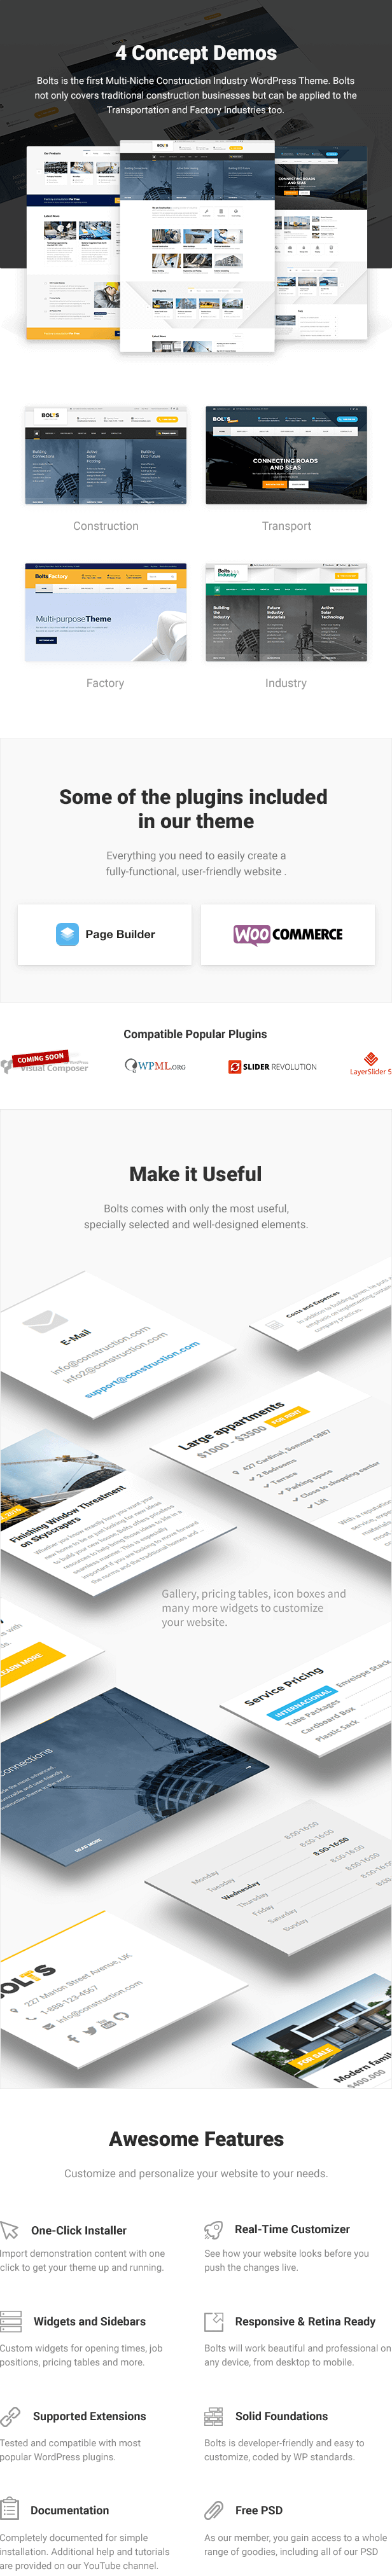 Bolts - Multi-niche WordPress theme for Construction, Transport, Industry and Factory Business